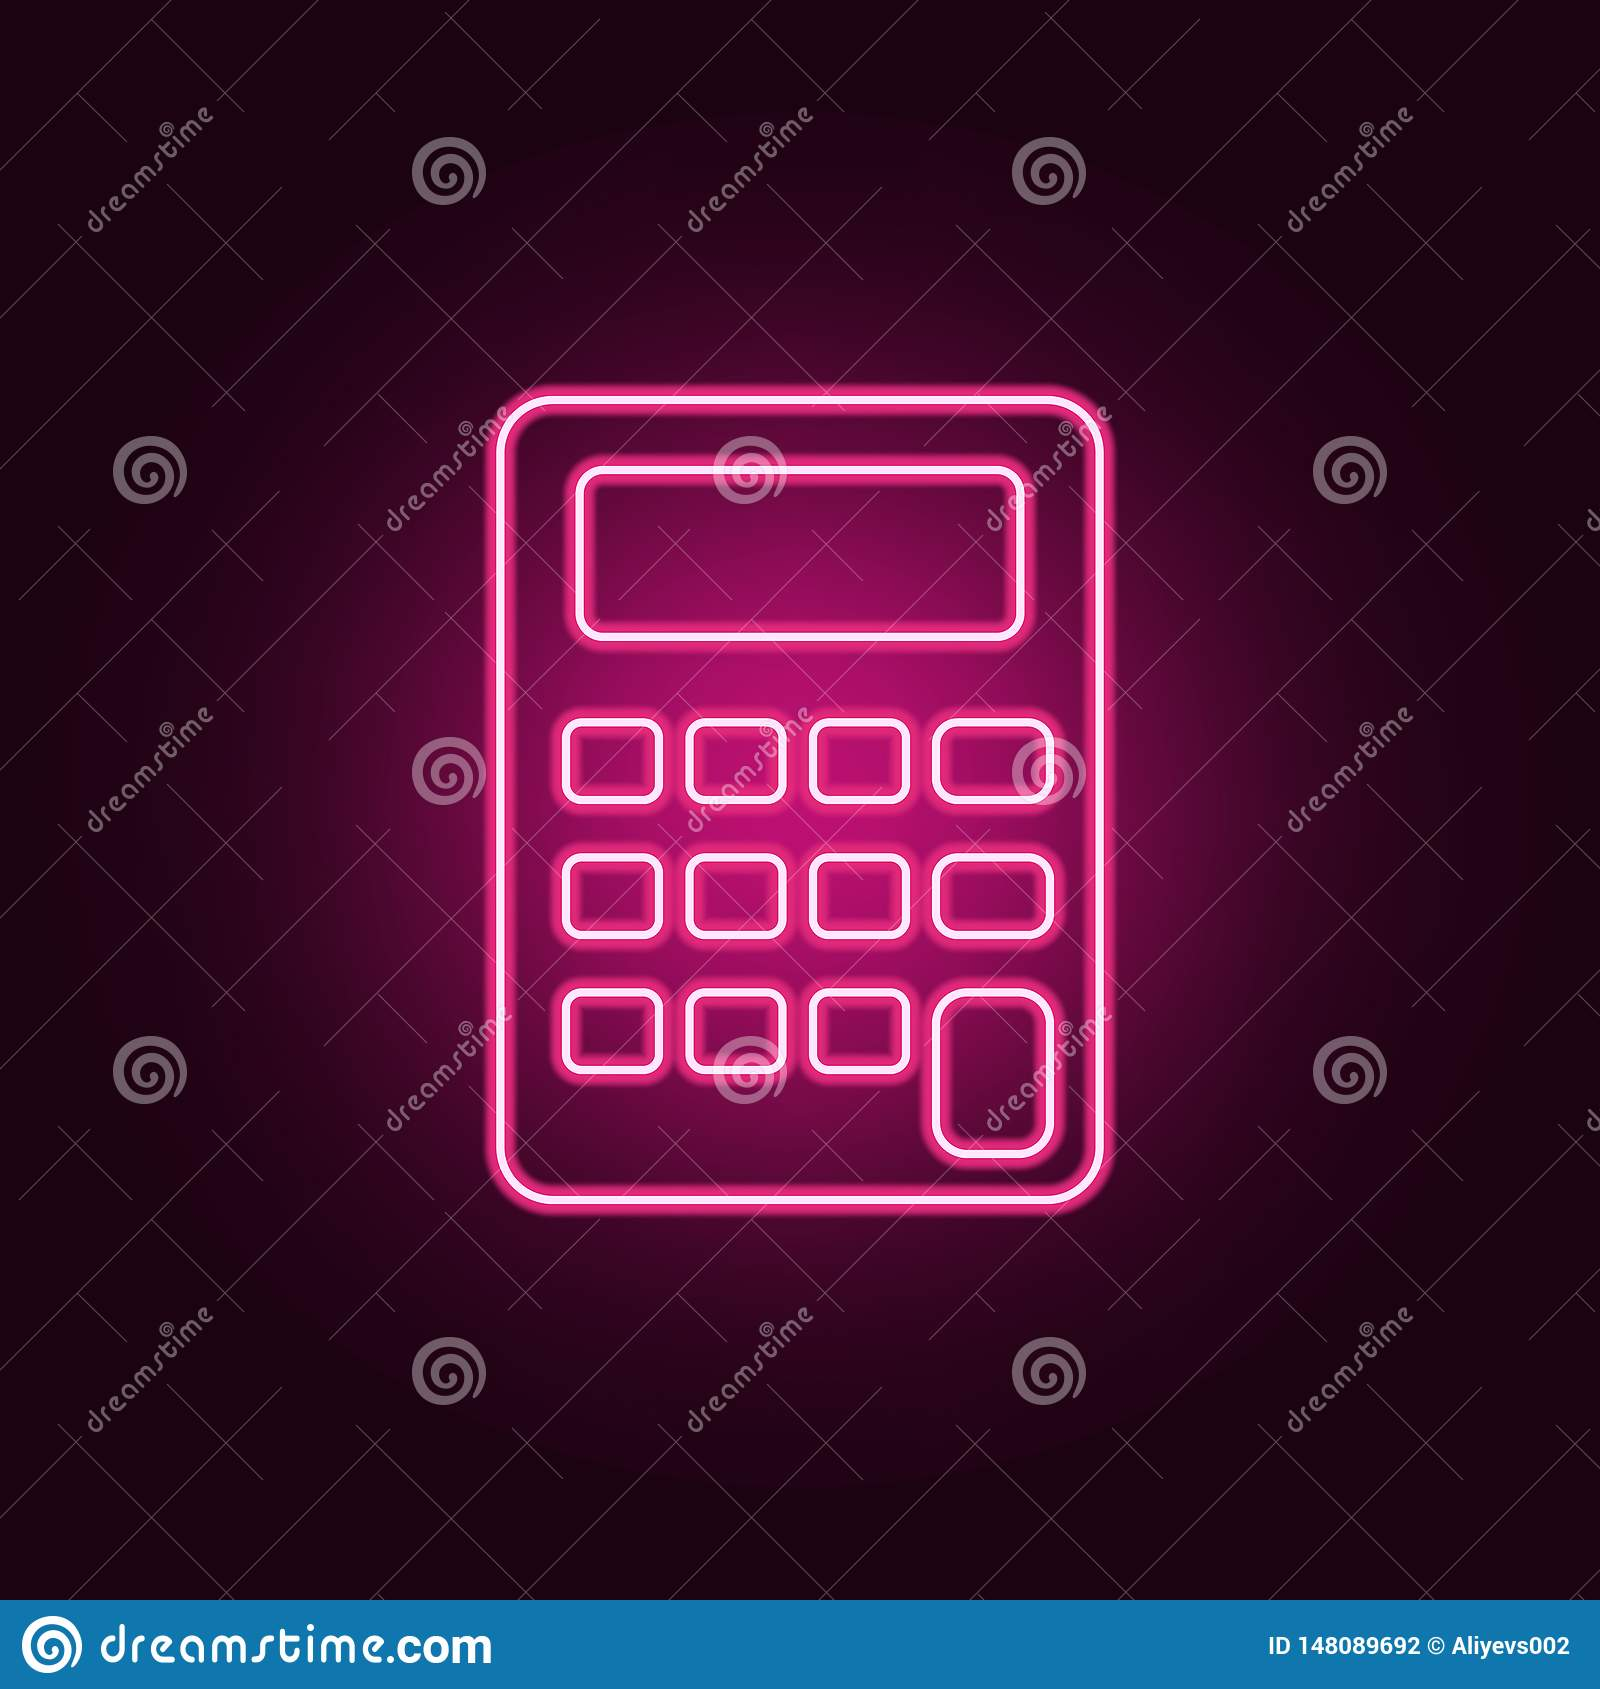 Calculator Neon Icon Elements Of Measure Set Simple Icon For Websites Web Design Mobile App Info Graphics Stock Illustration Illustration Of Symbol Calculate 148089692